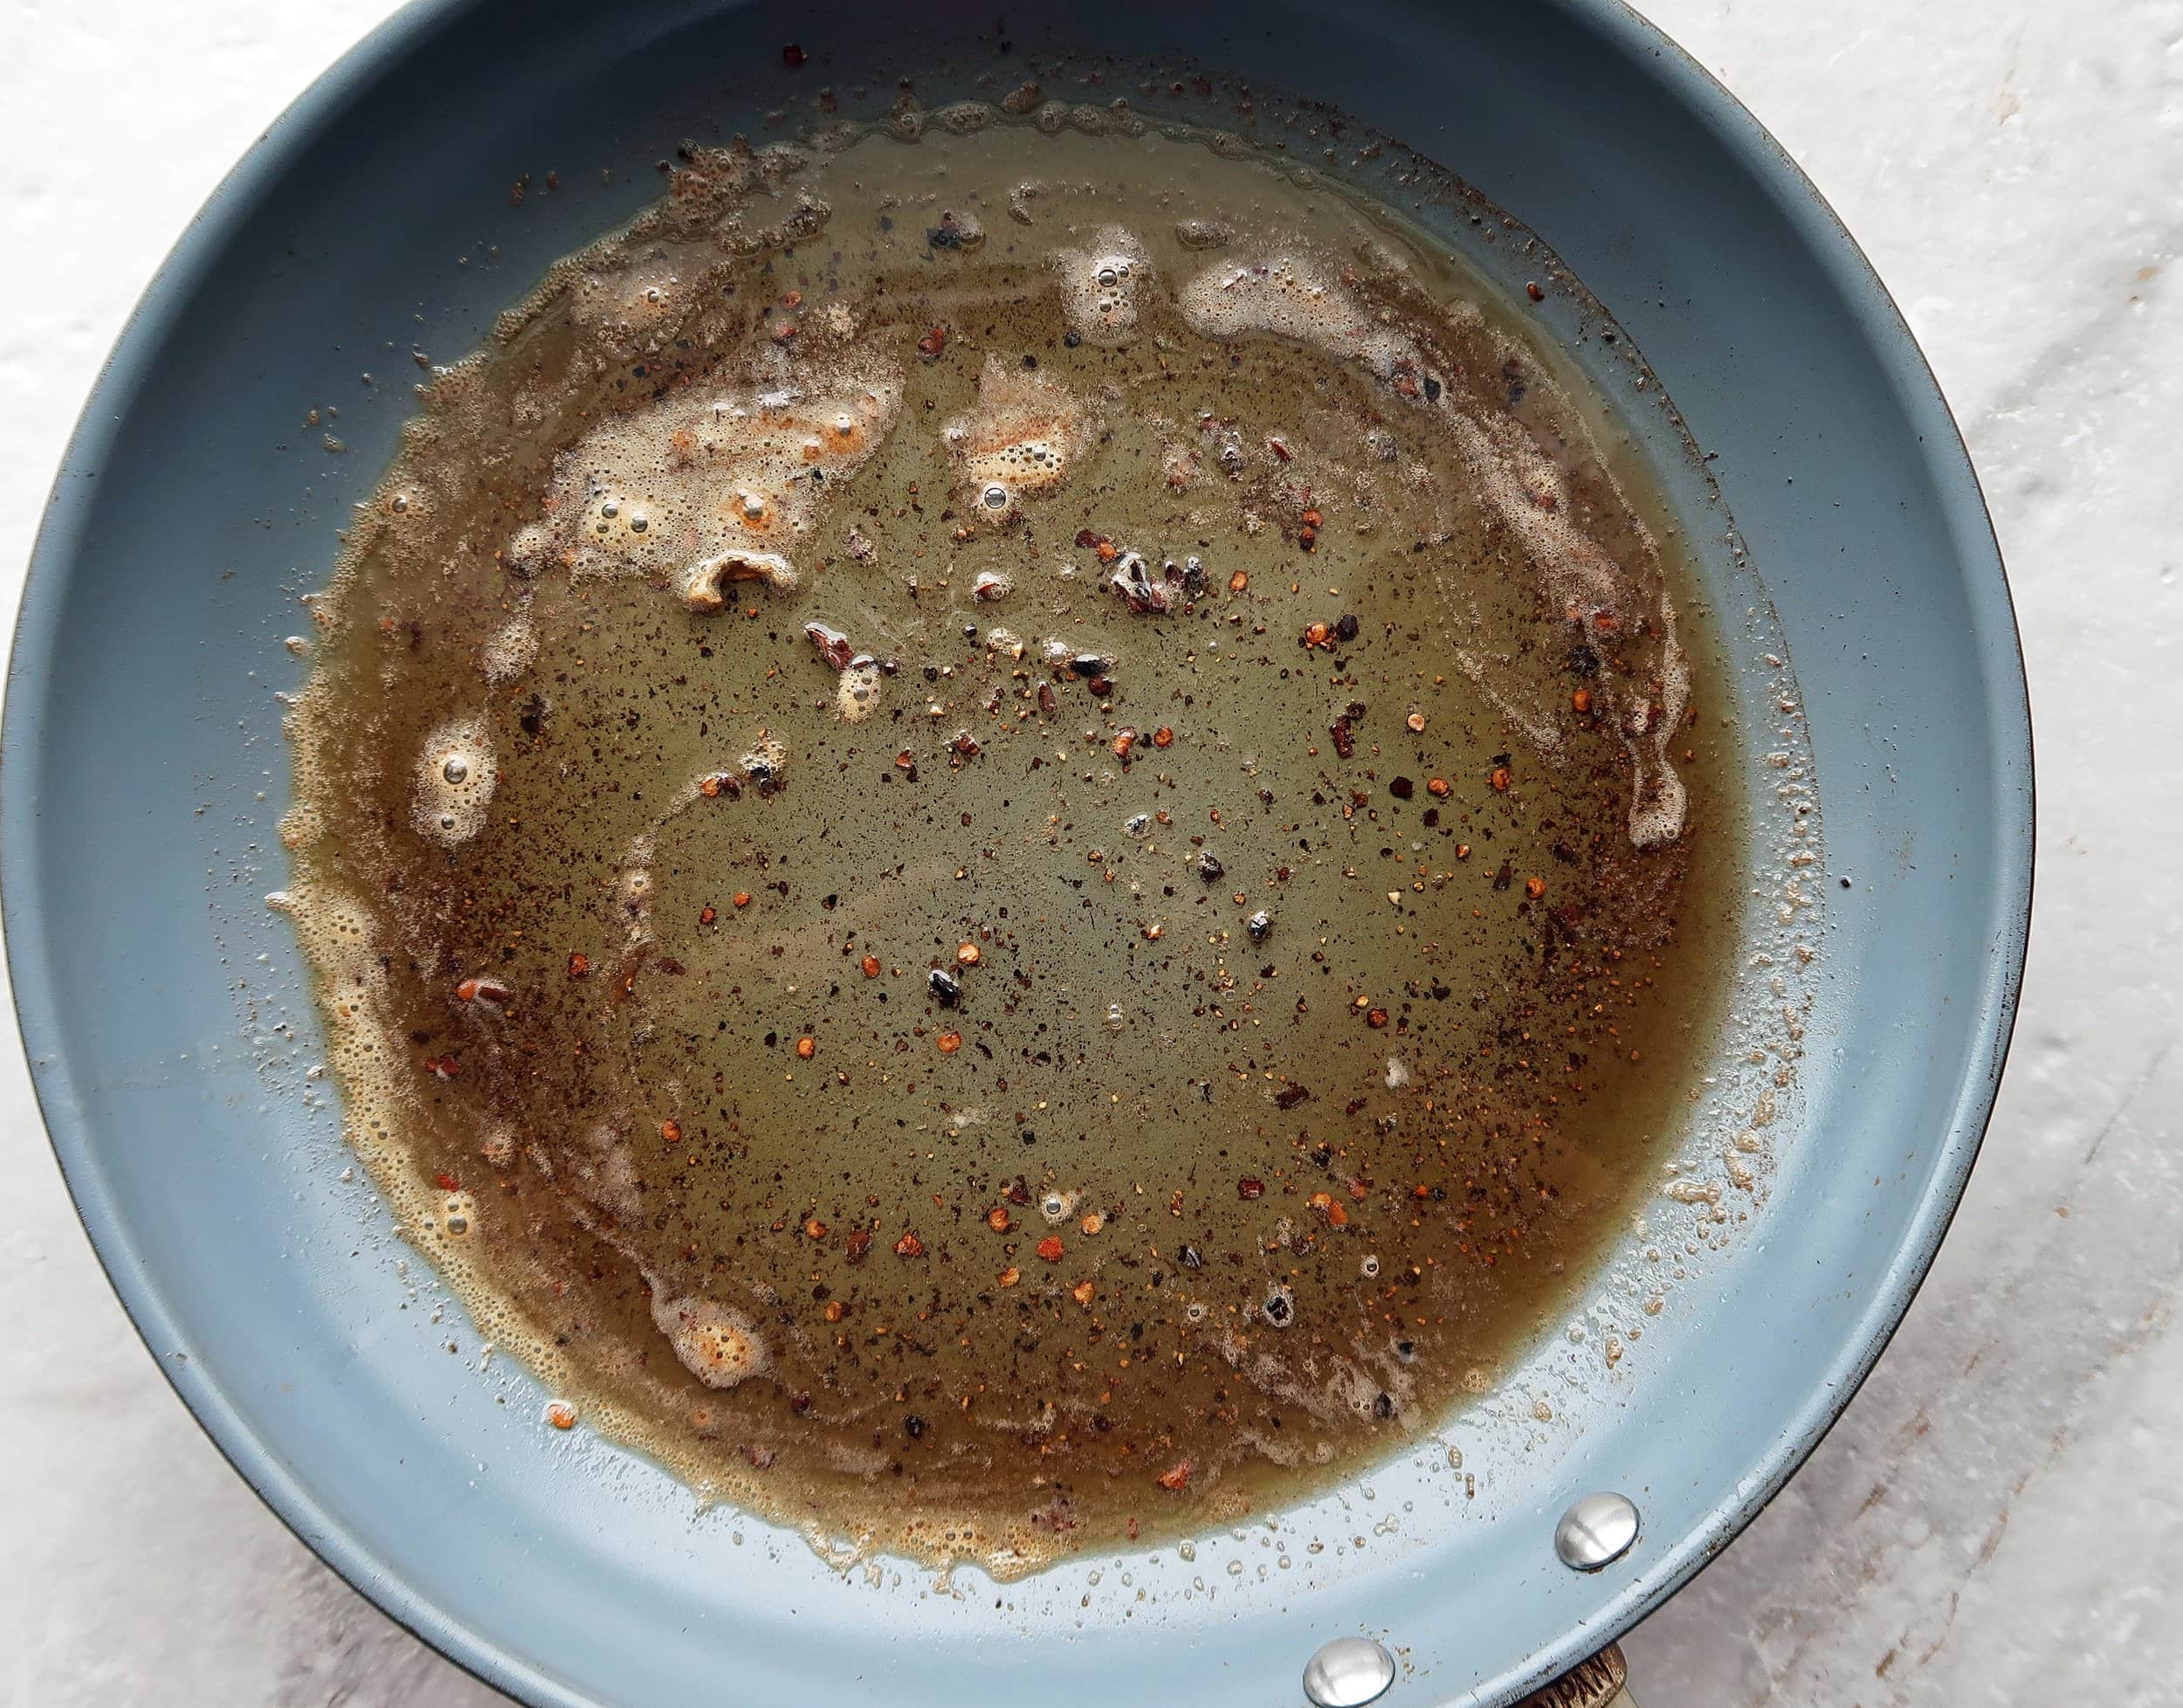 A skillet with melted butter, olive oil, black pepper, and red pepper flakes.